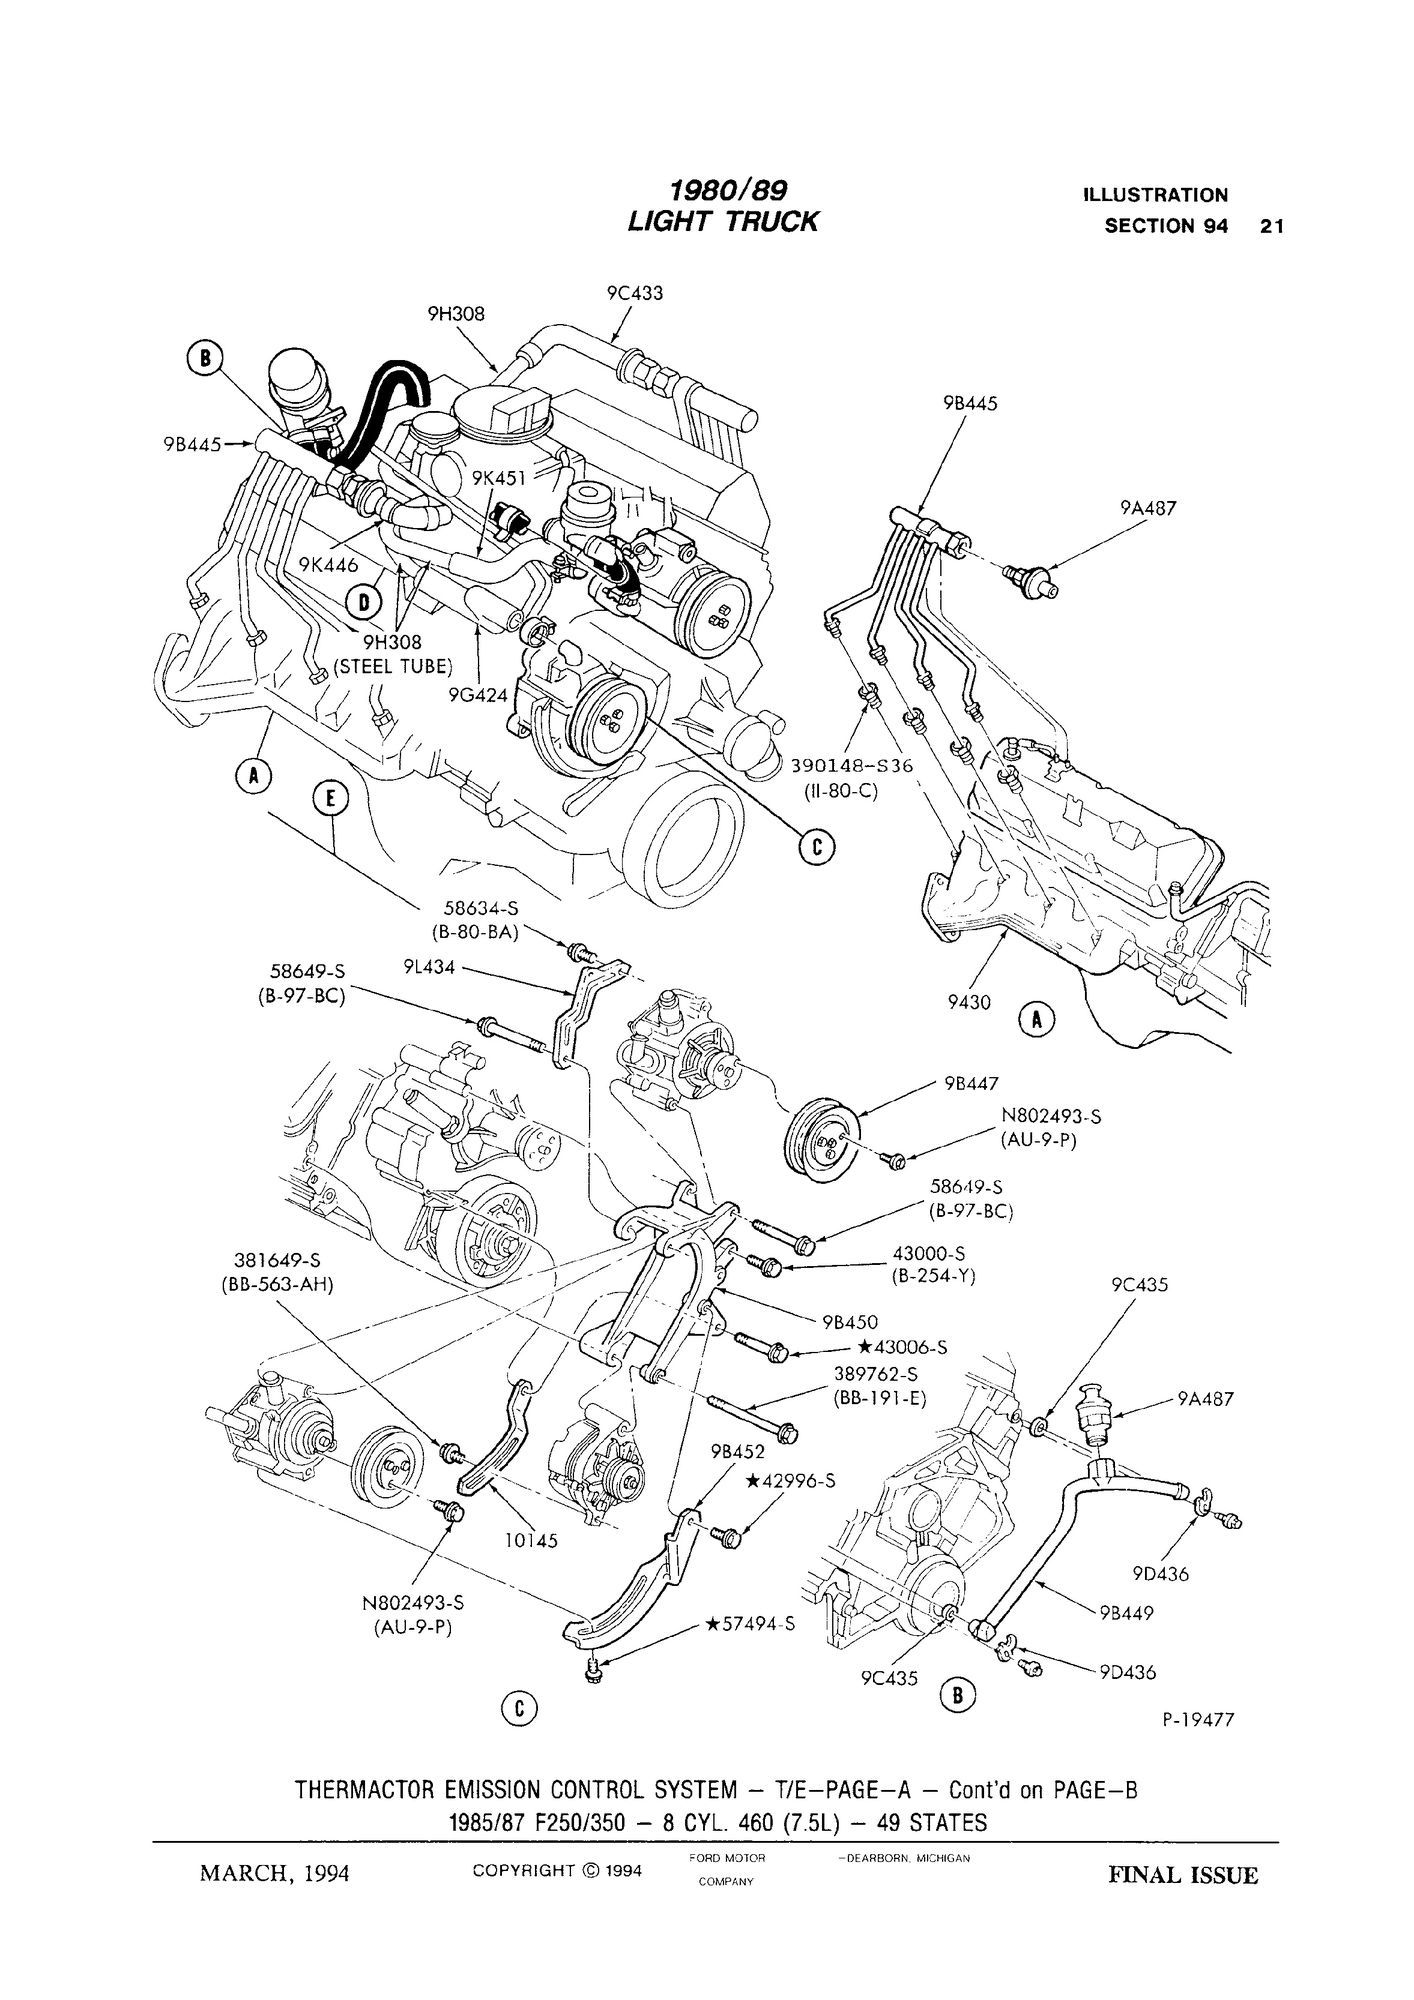 I found this image in another thread this is exactly what is on my engine dual air smog pumps on the passenger side above the alternator